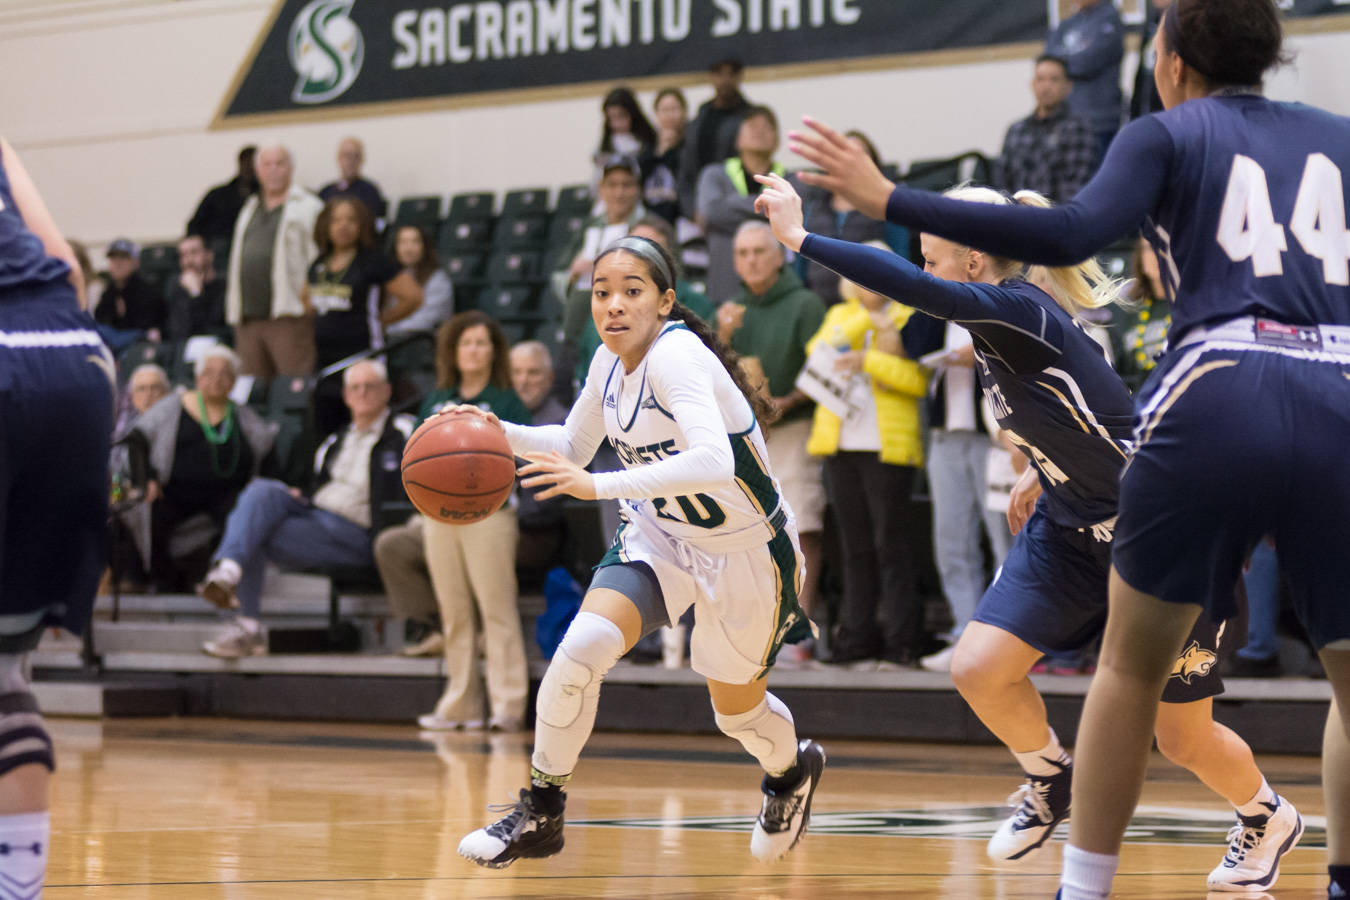 Sacramento State freshman guard Tiara Scott scored a career-high 25 points against Montana State at the Nest on Feb. 18. (Photo by Matthew Dyer)